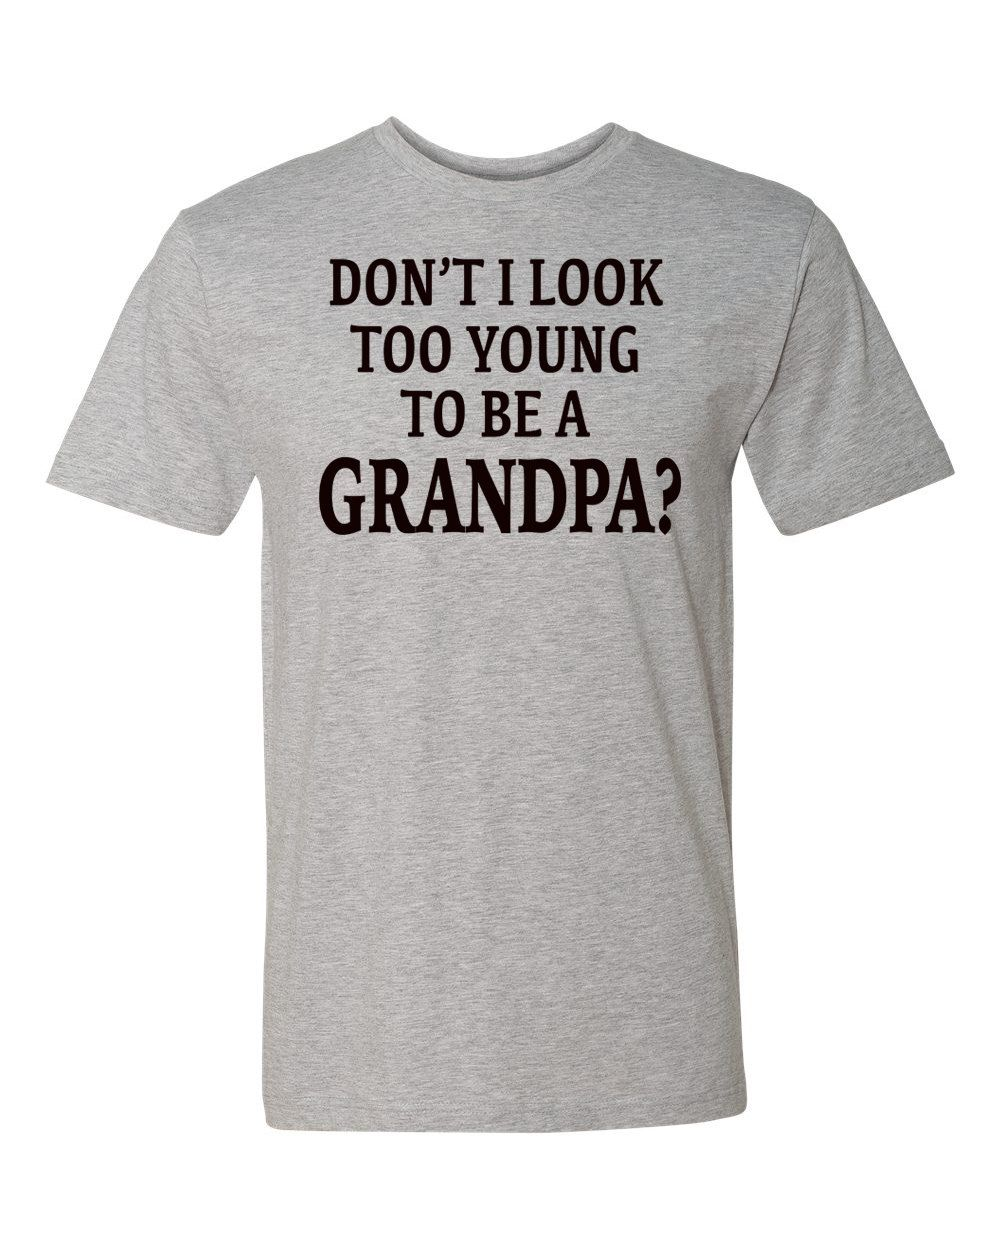 Don't I Look To Young To Be A Grandpa? Unisex Shirt - Grandpa Shirt - Grandpa Gift by FamilyTeeStore on Etsy